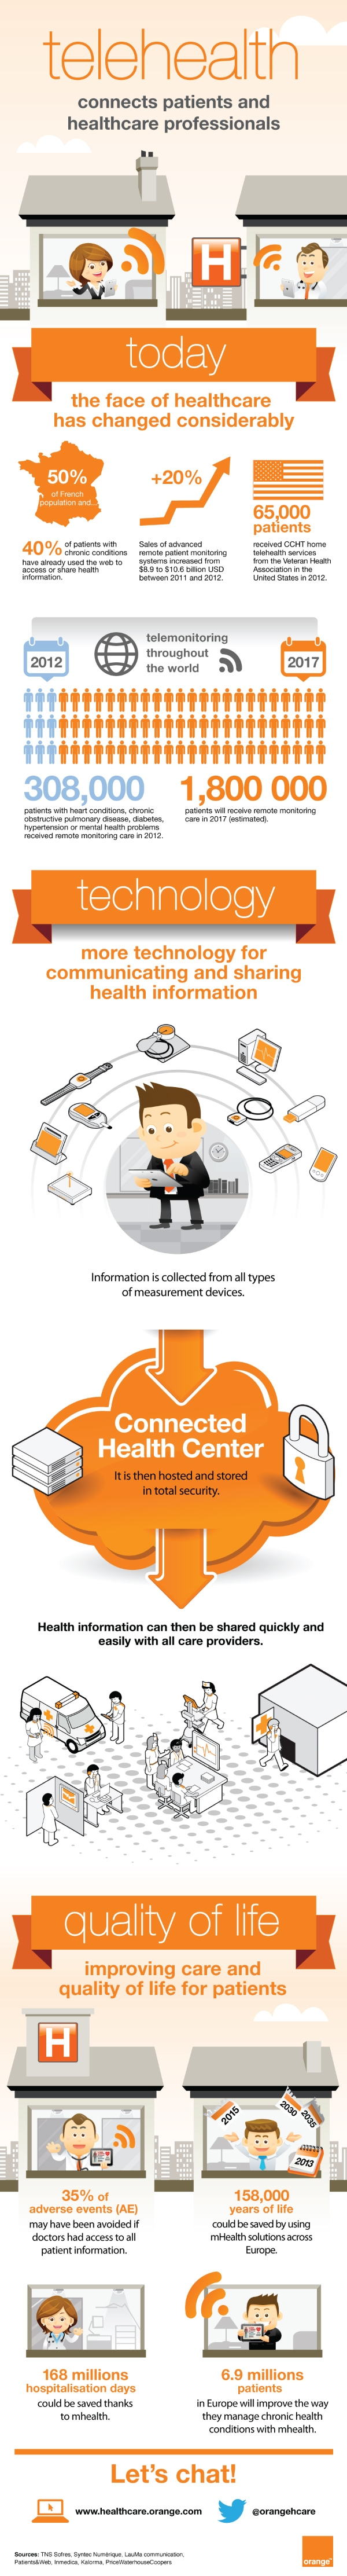 How Telehealth Connects Patients Healthcare Professionals Infographic